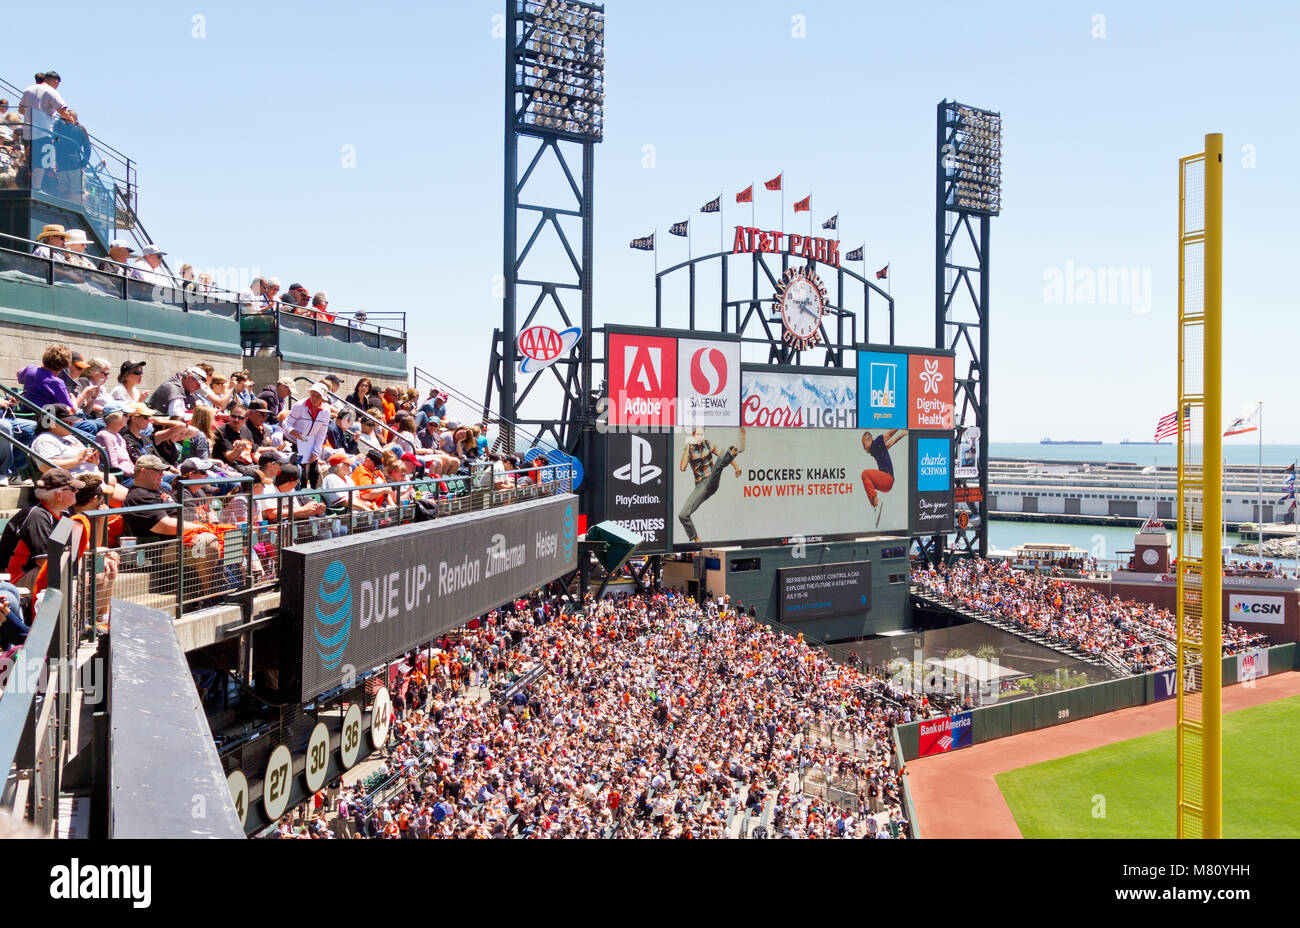 View of center field at AT&T Park, home of the San Francisco Giants. - Stock Image